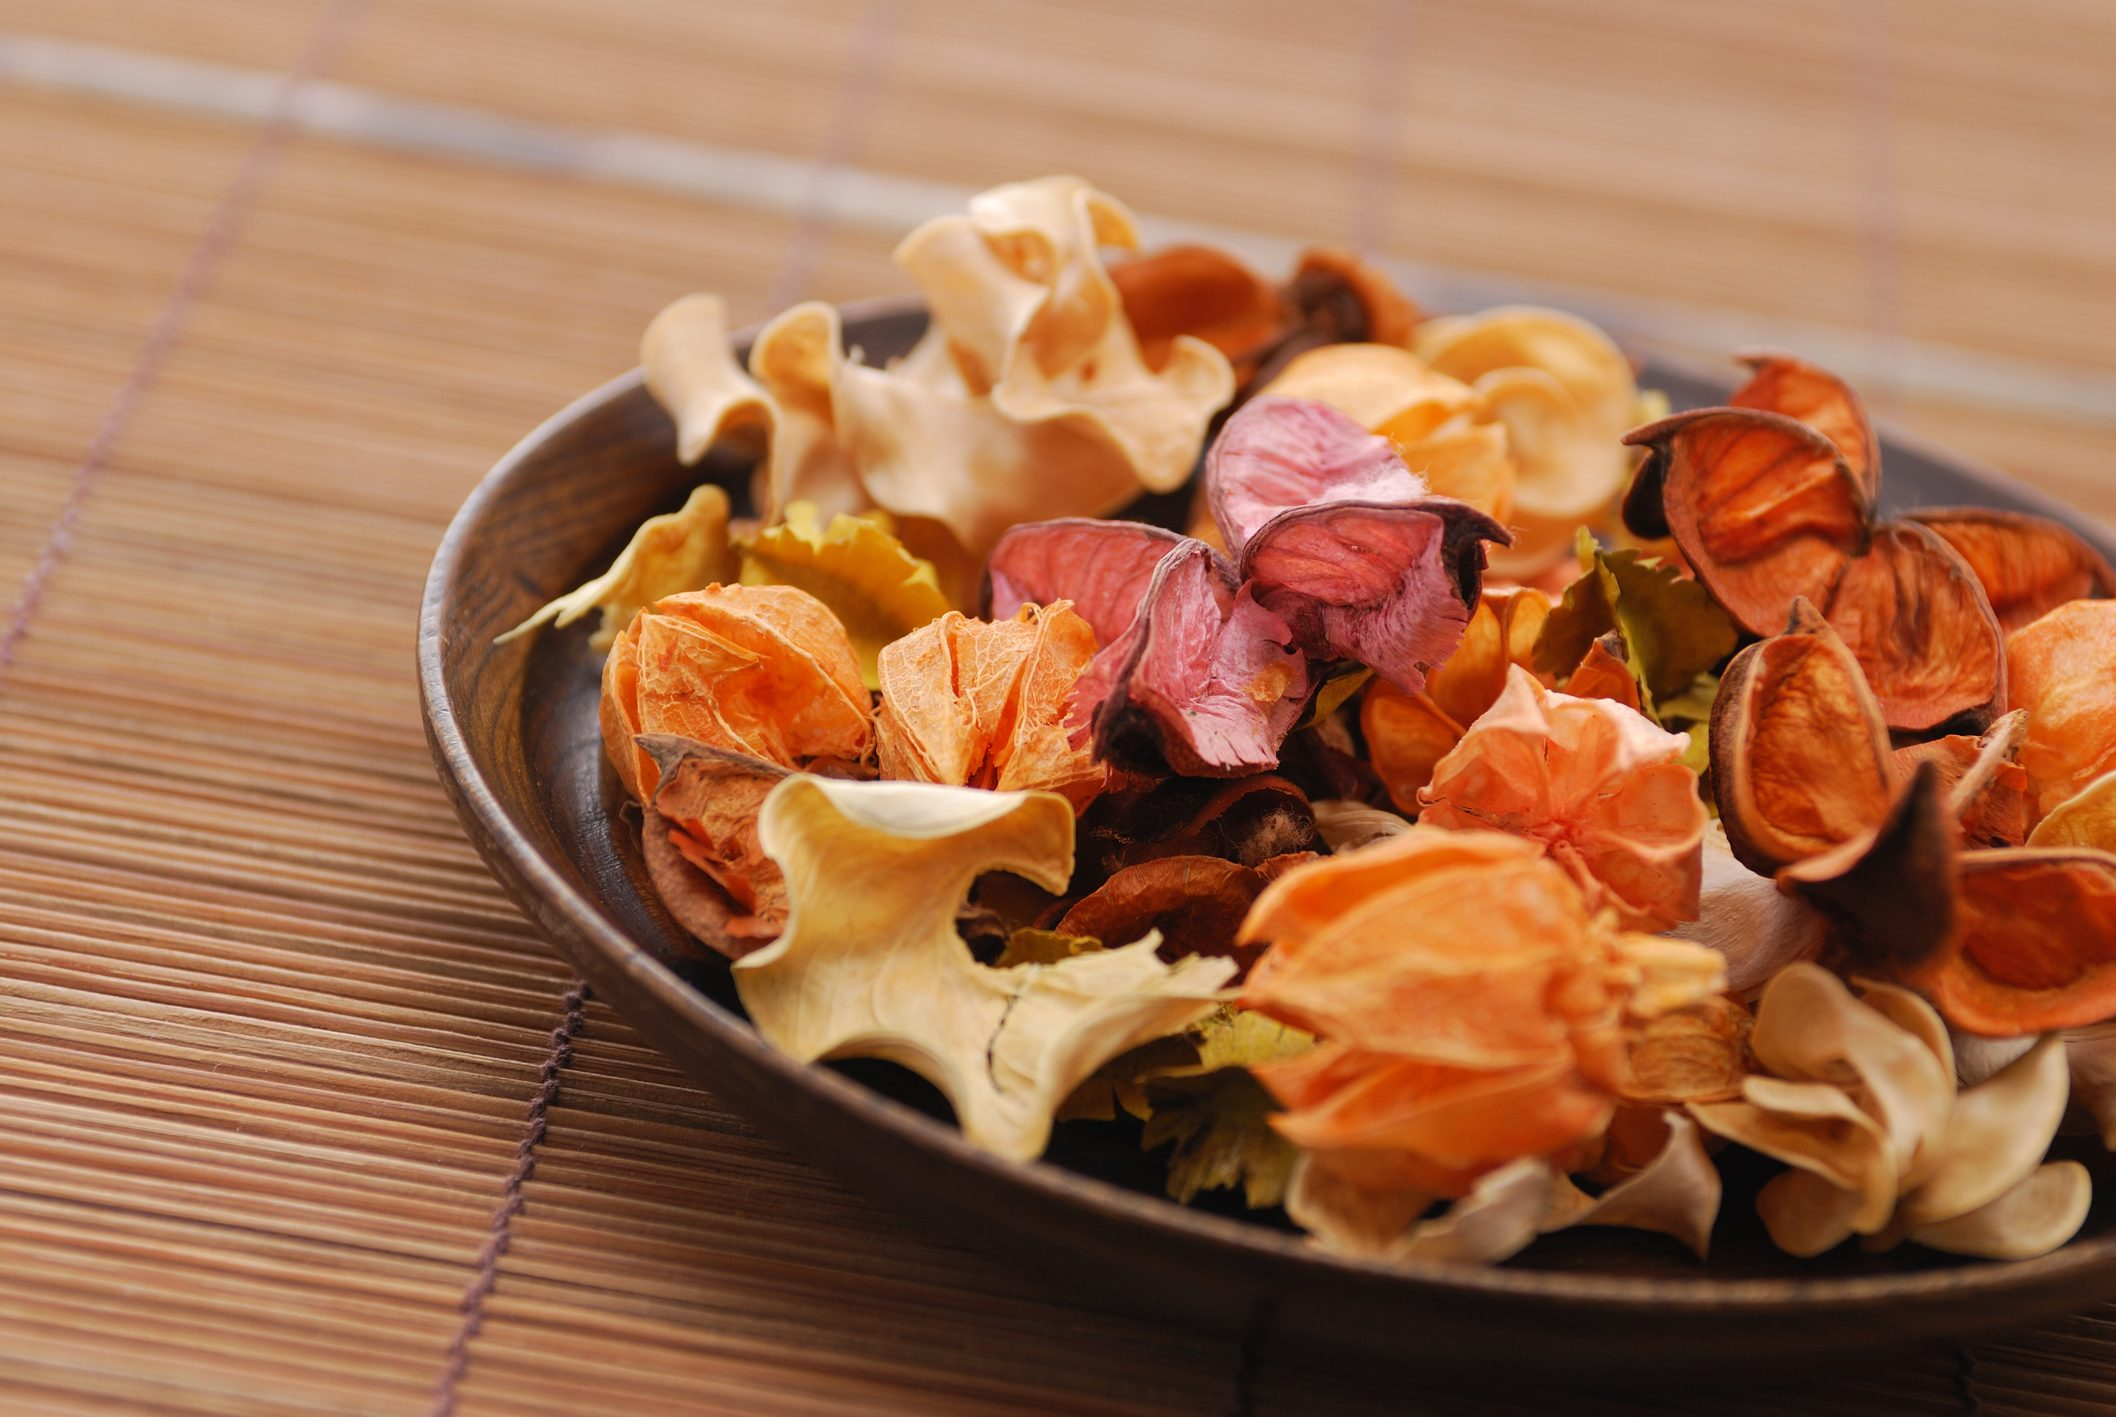 Potpourri in a bowl